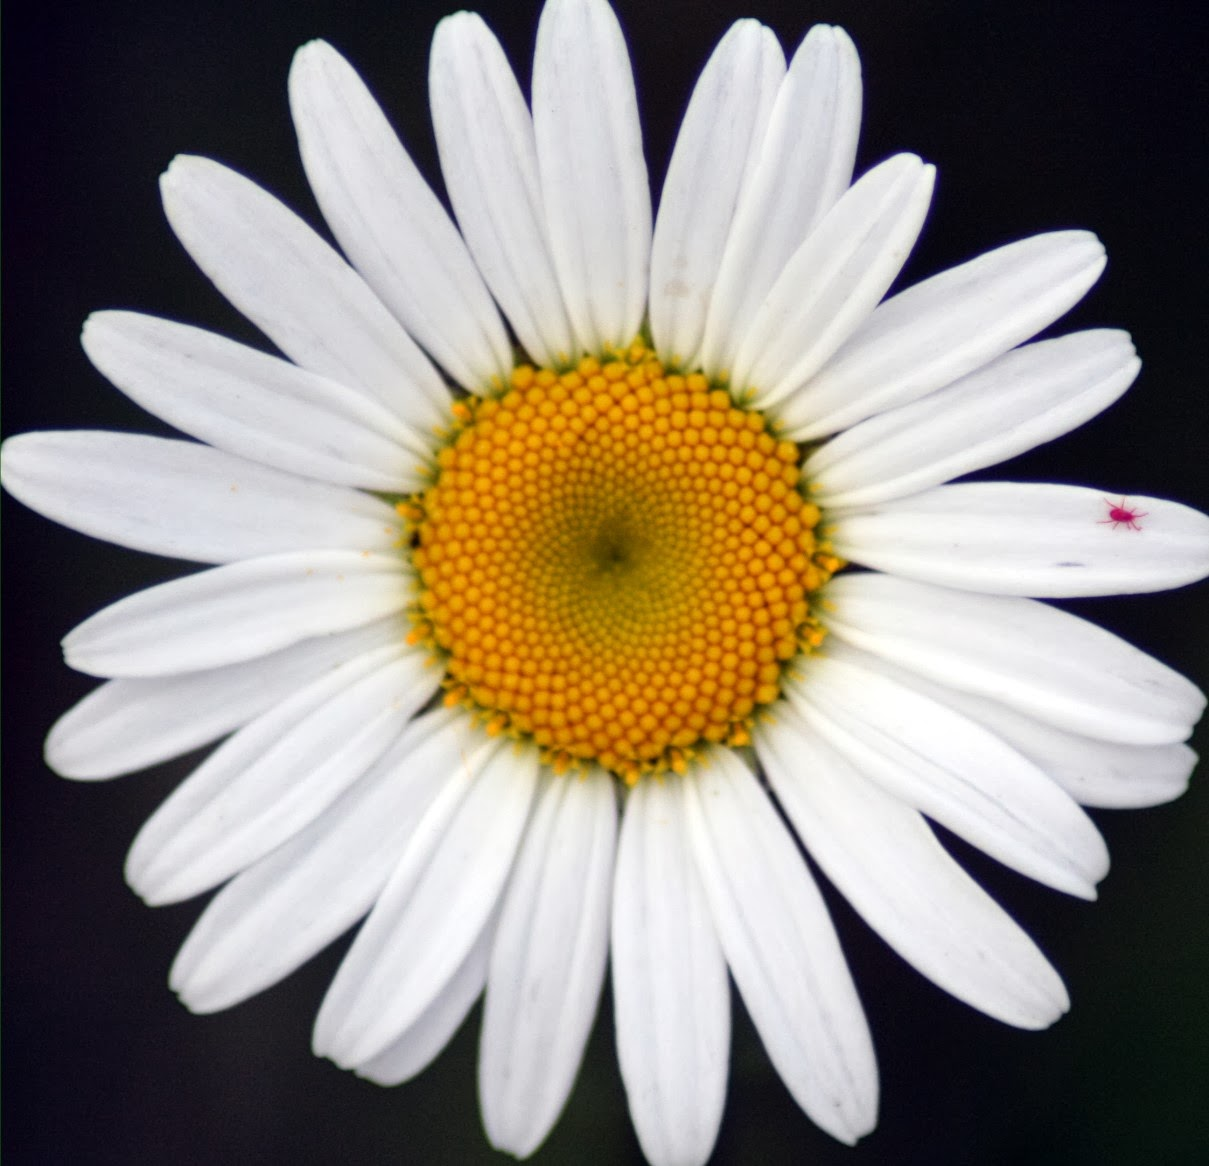 The Flower Garden Daisy Flower Meaning